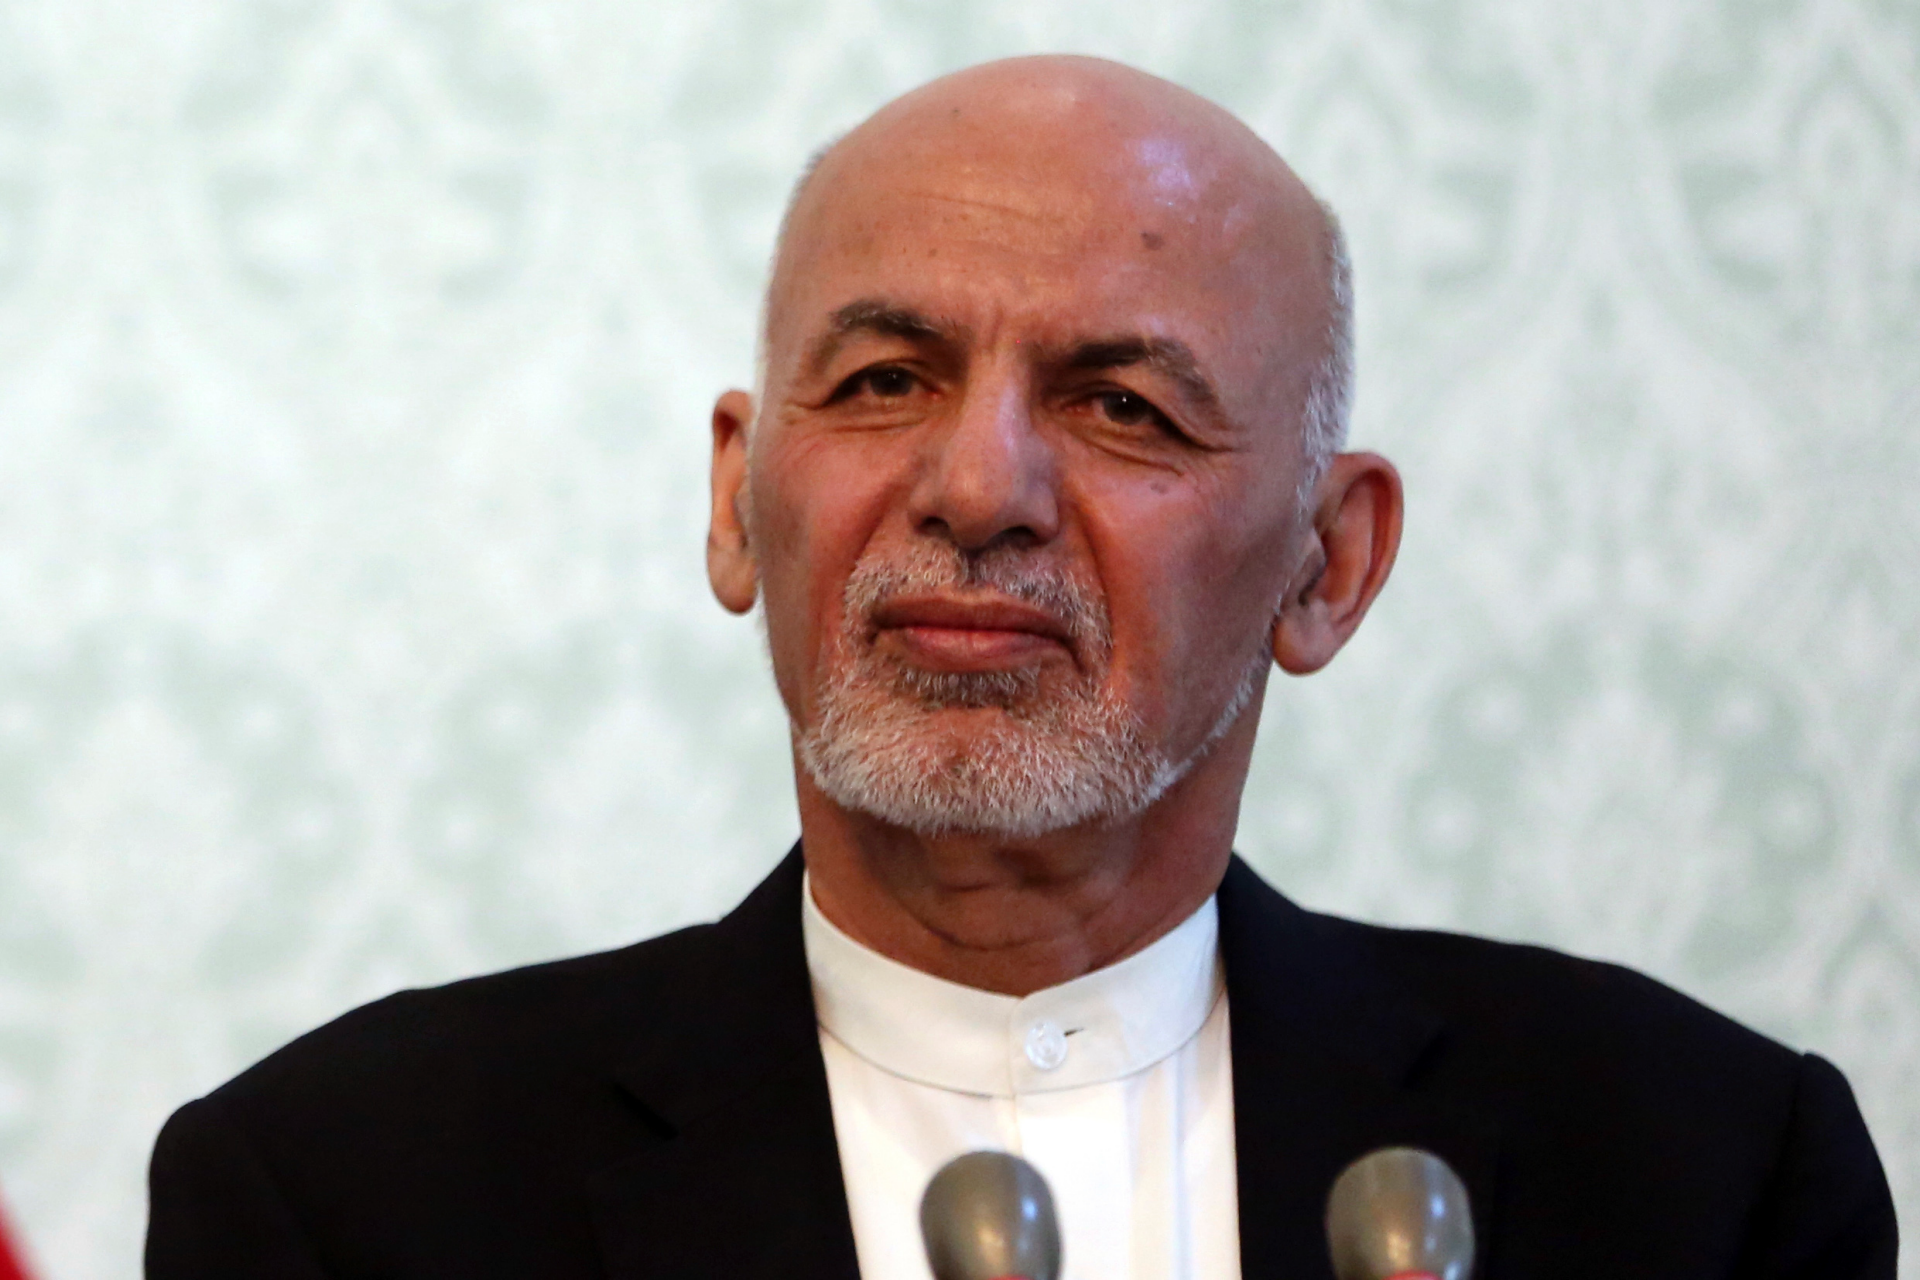 Afghan President Ghani flees, US Embassy lowers American flag with Taliban takeover nearly complete